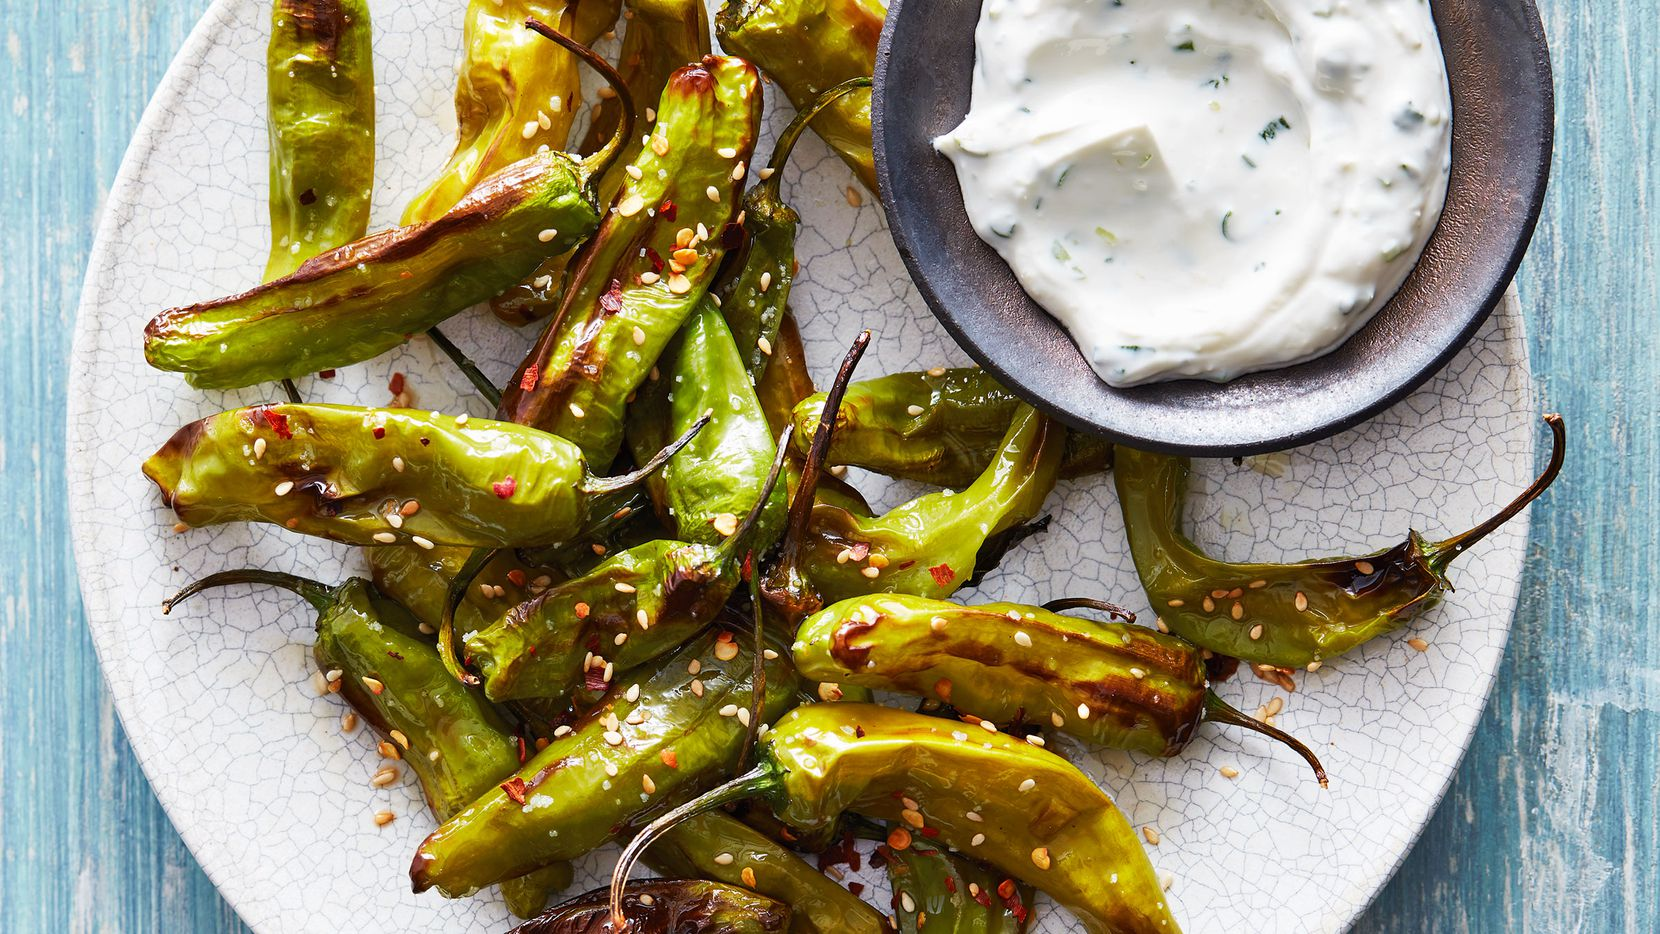 Blistered Shishito Peppers is a great air fryer recipe from AIR FRYER REVOLUTION: 100 Crispy, Healthy, Fast & Fresh Recipes by Urvashi Pitre.